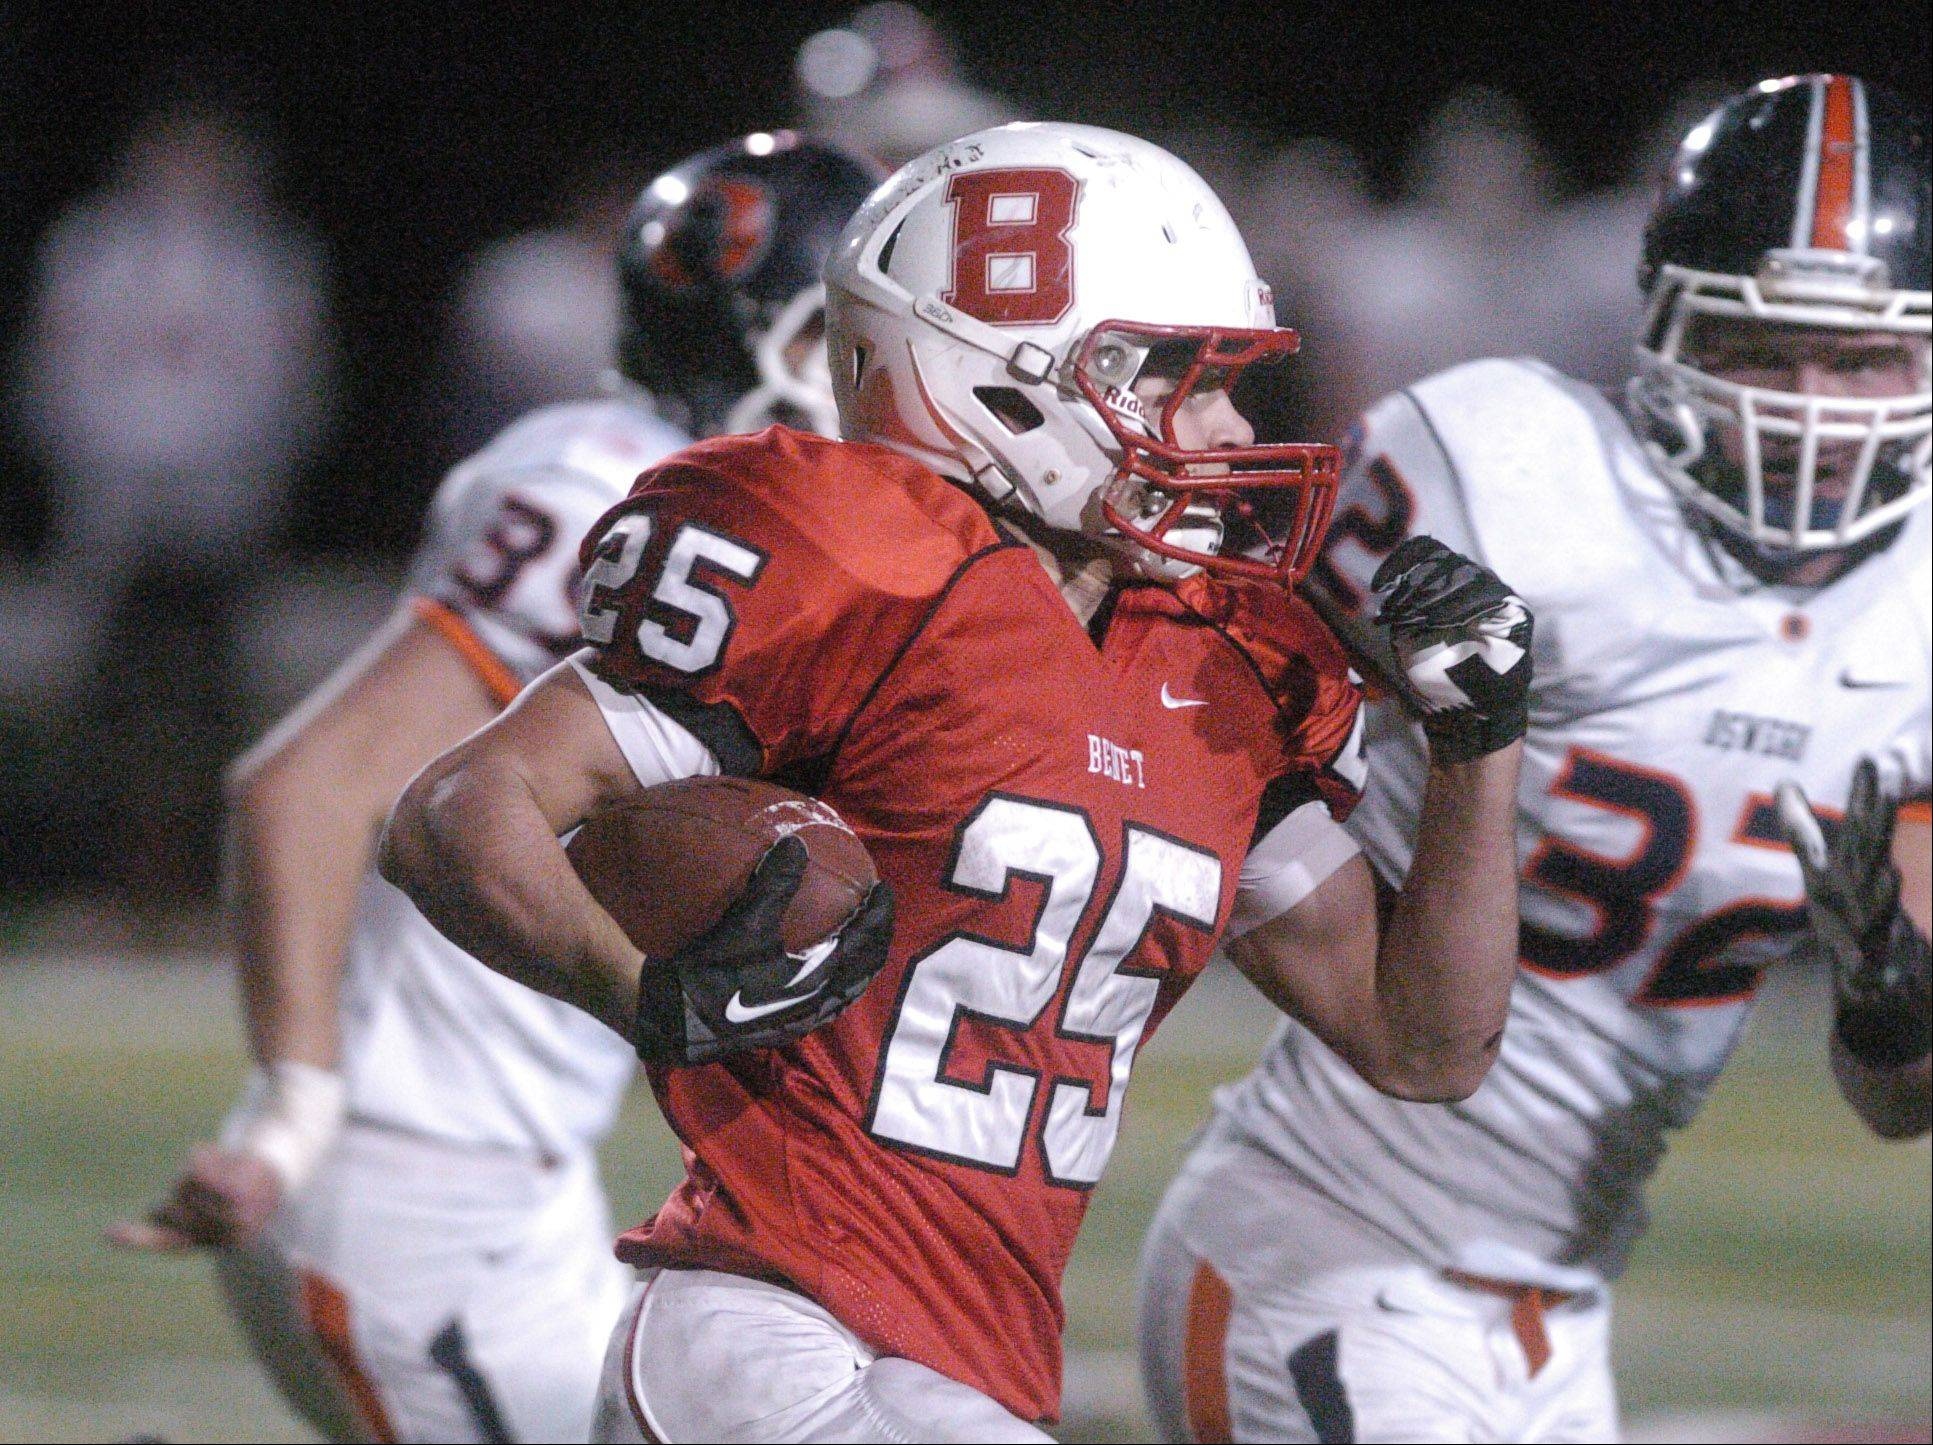 Porter Ontko of Benet runs the ball during the Oswego at Benet football sectional game in Lisle Friday.